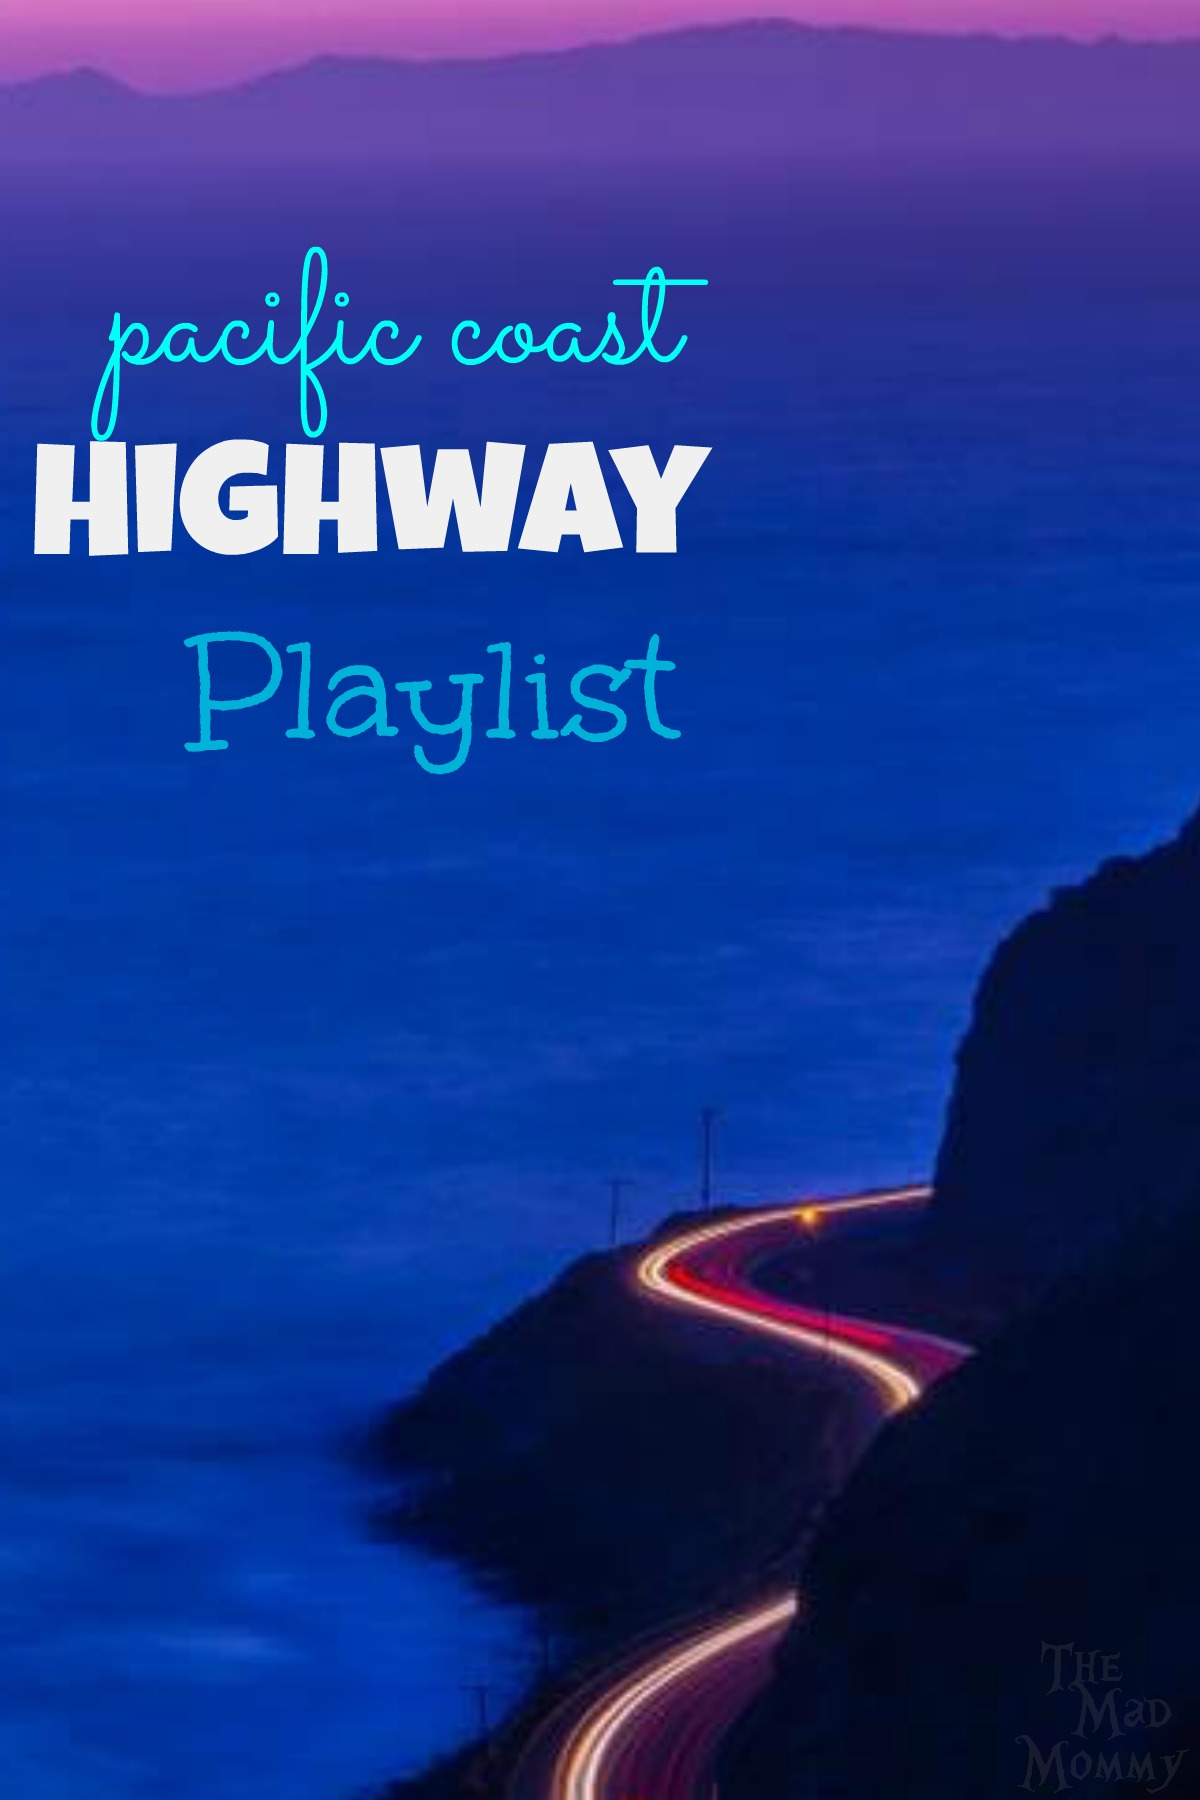 I have always had this epic soundtrack in my head that goes along with my drive down the PCH, so I am putting together my Pacific Coast Highway playlist!